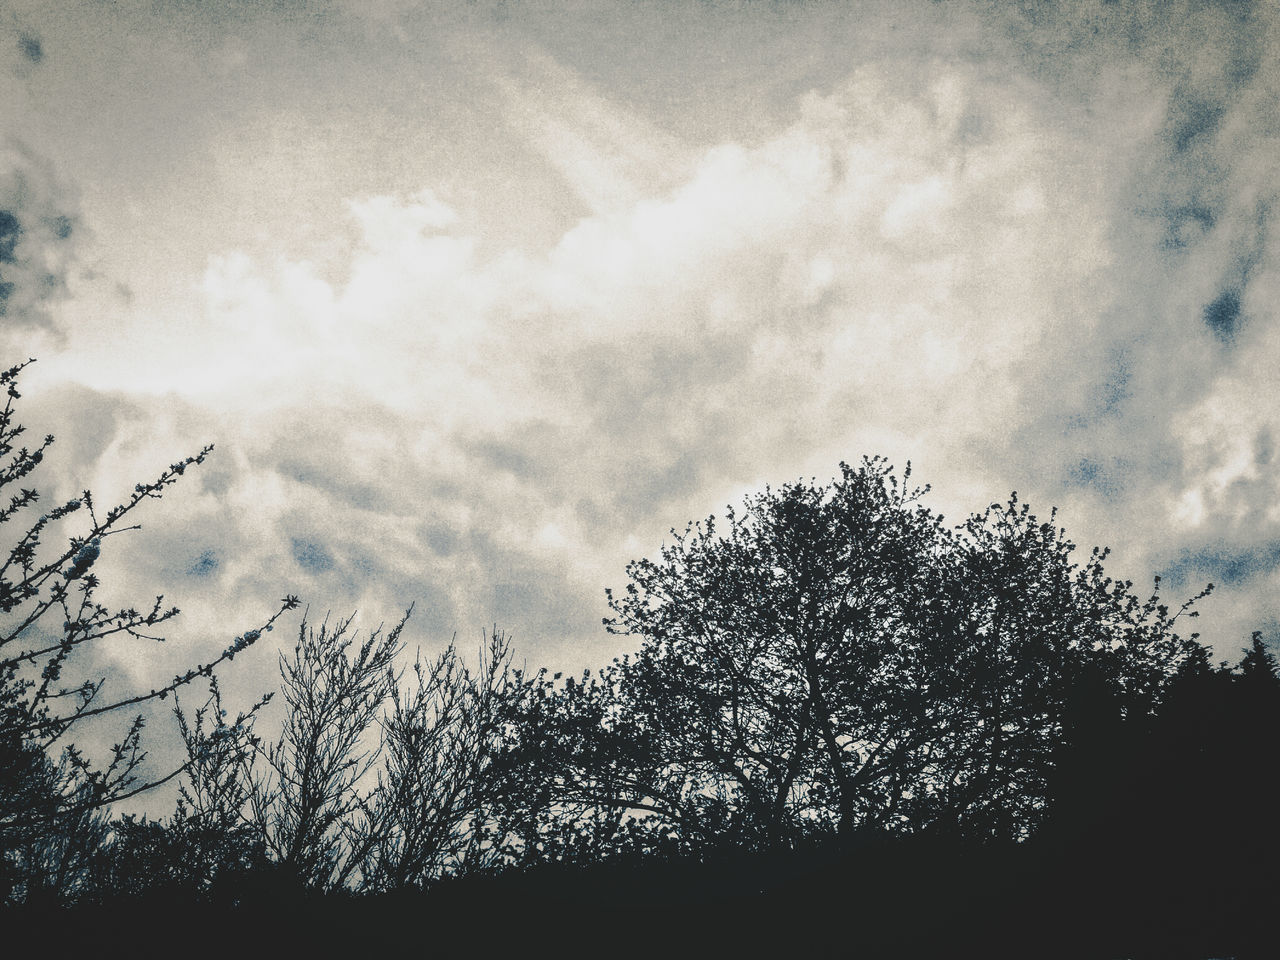 tree, sky, nature, low angle view, silhouette, cloud - sky, beauty in nature, no people, outdoors, tranquility, scenics, day, growth